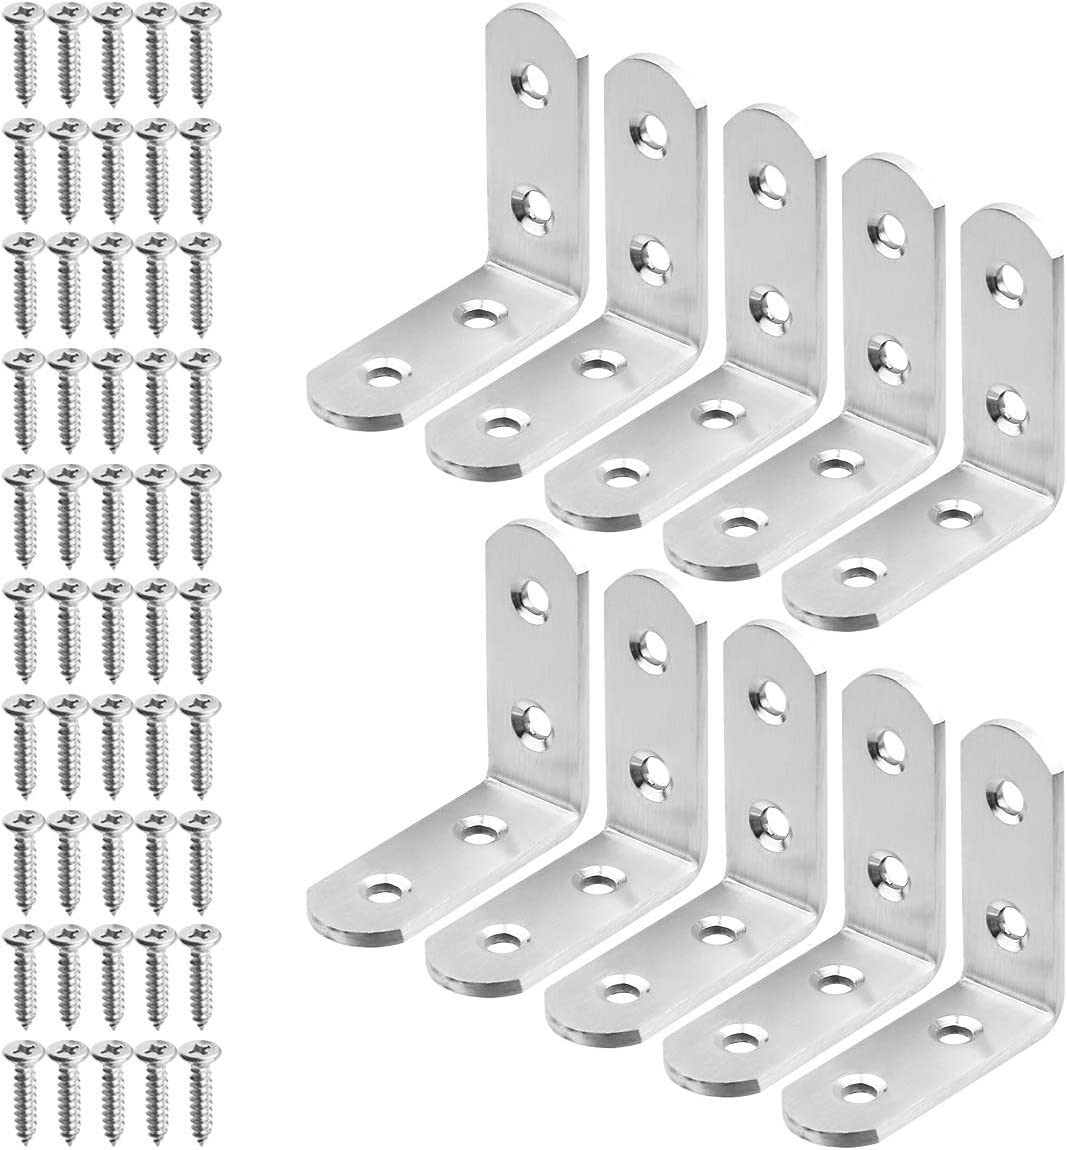 TOPPROS Pack Price reduction of10 Stainless Steel Popular products L Corner Brackets Duty Heavy C